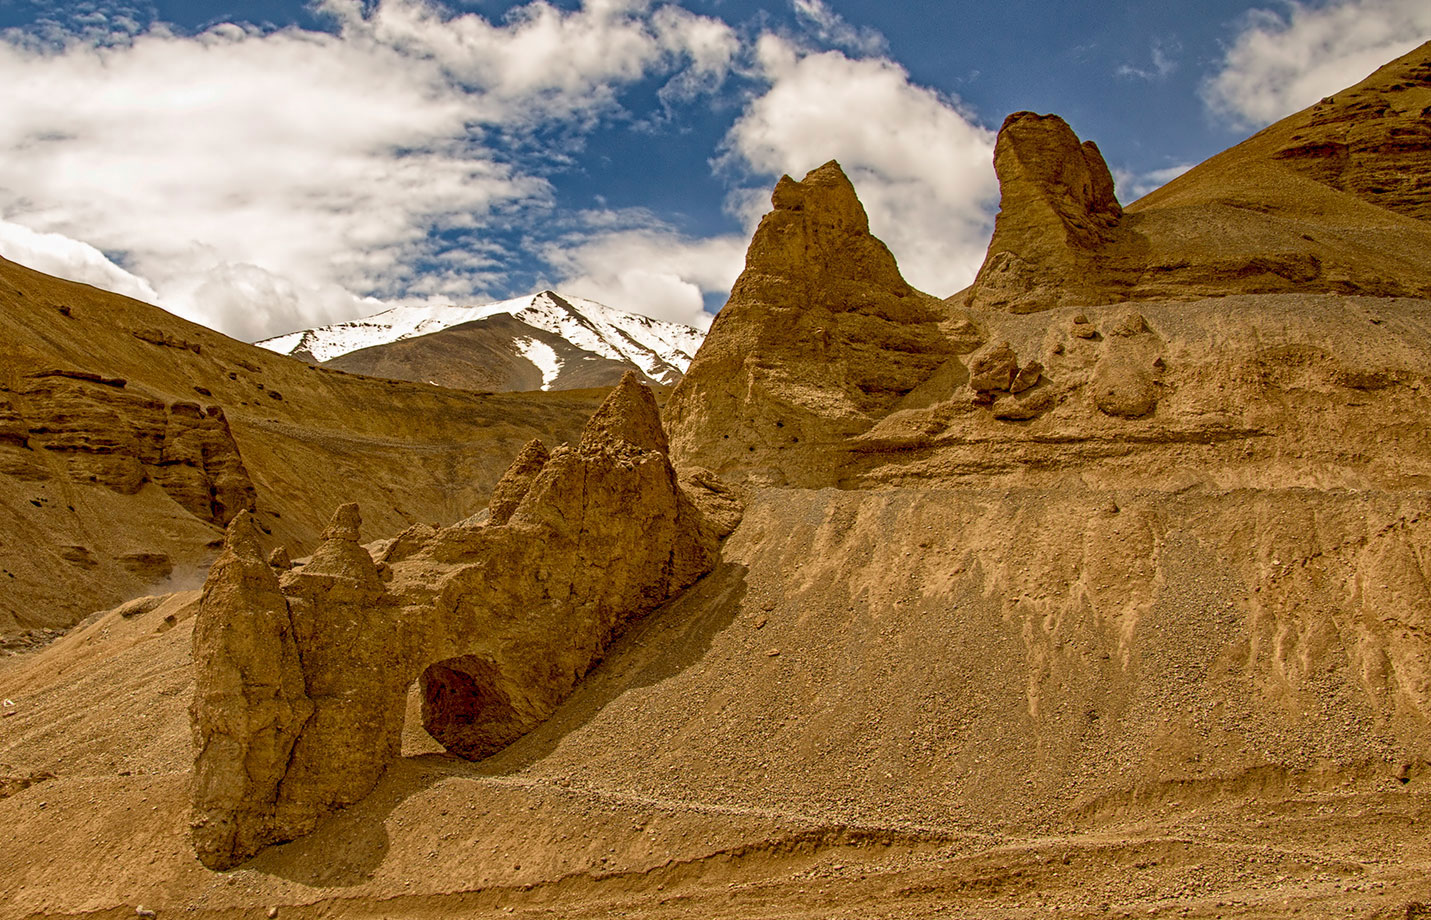 Cool rock formations on the Manali Leh Highway